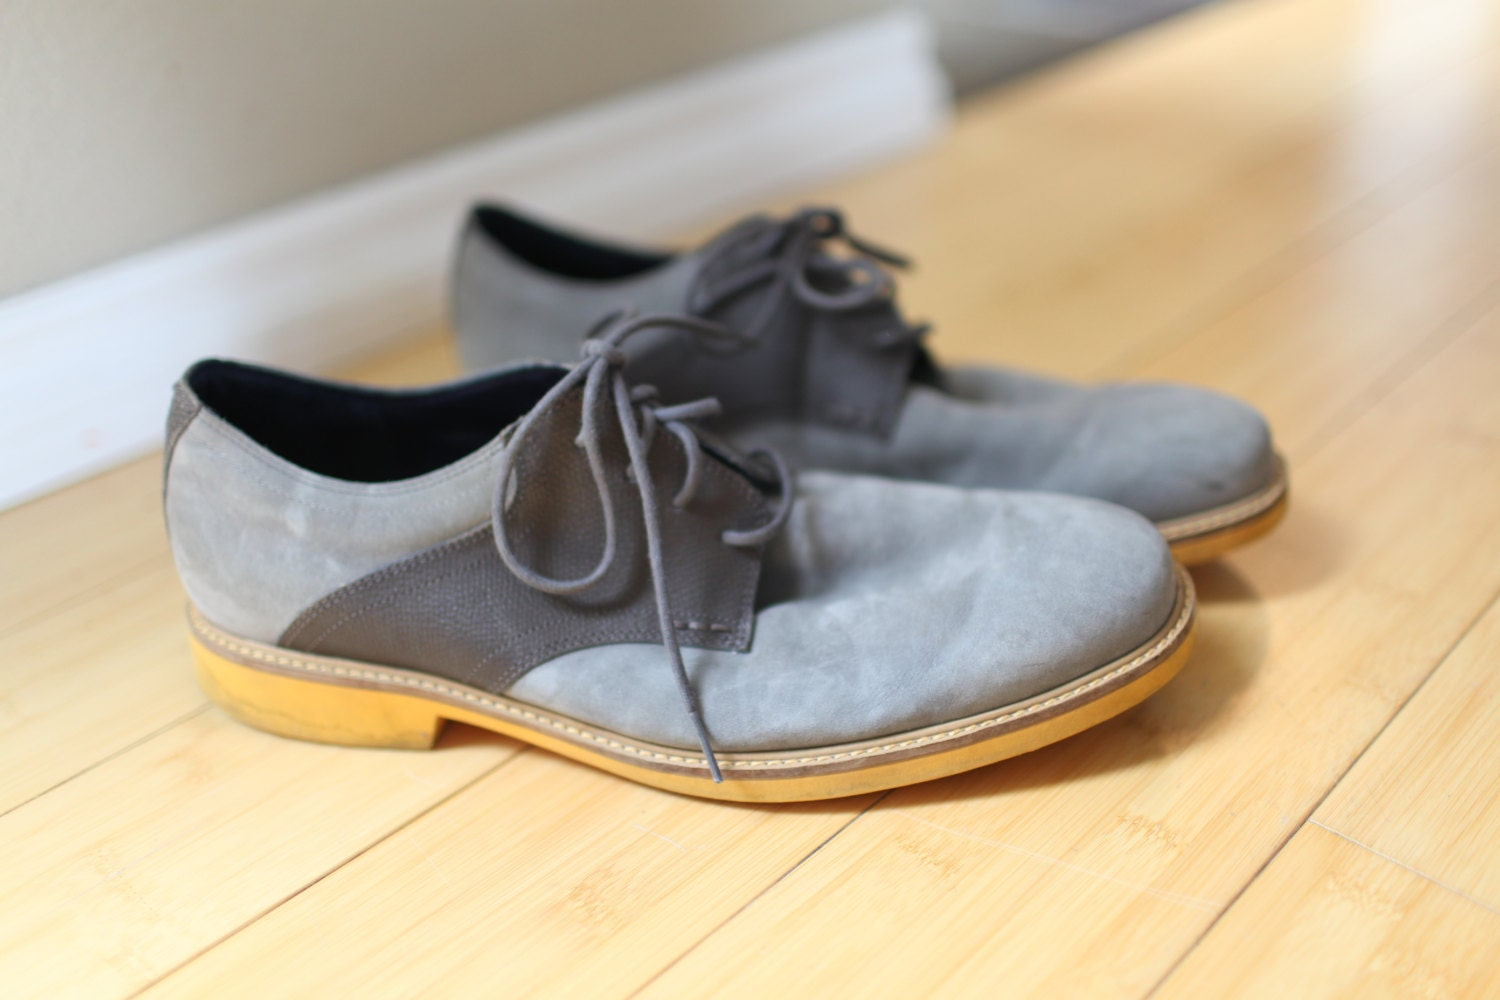 Cole Haan Gray Suede Leather Saddle Shoes Oxfords Loafers